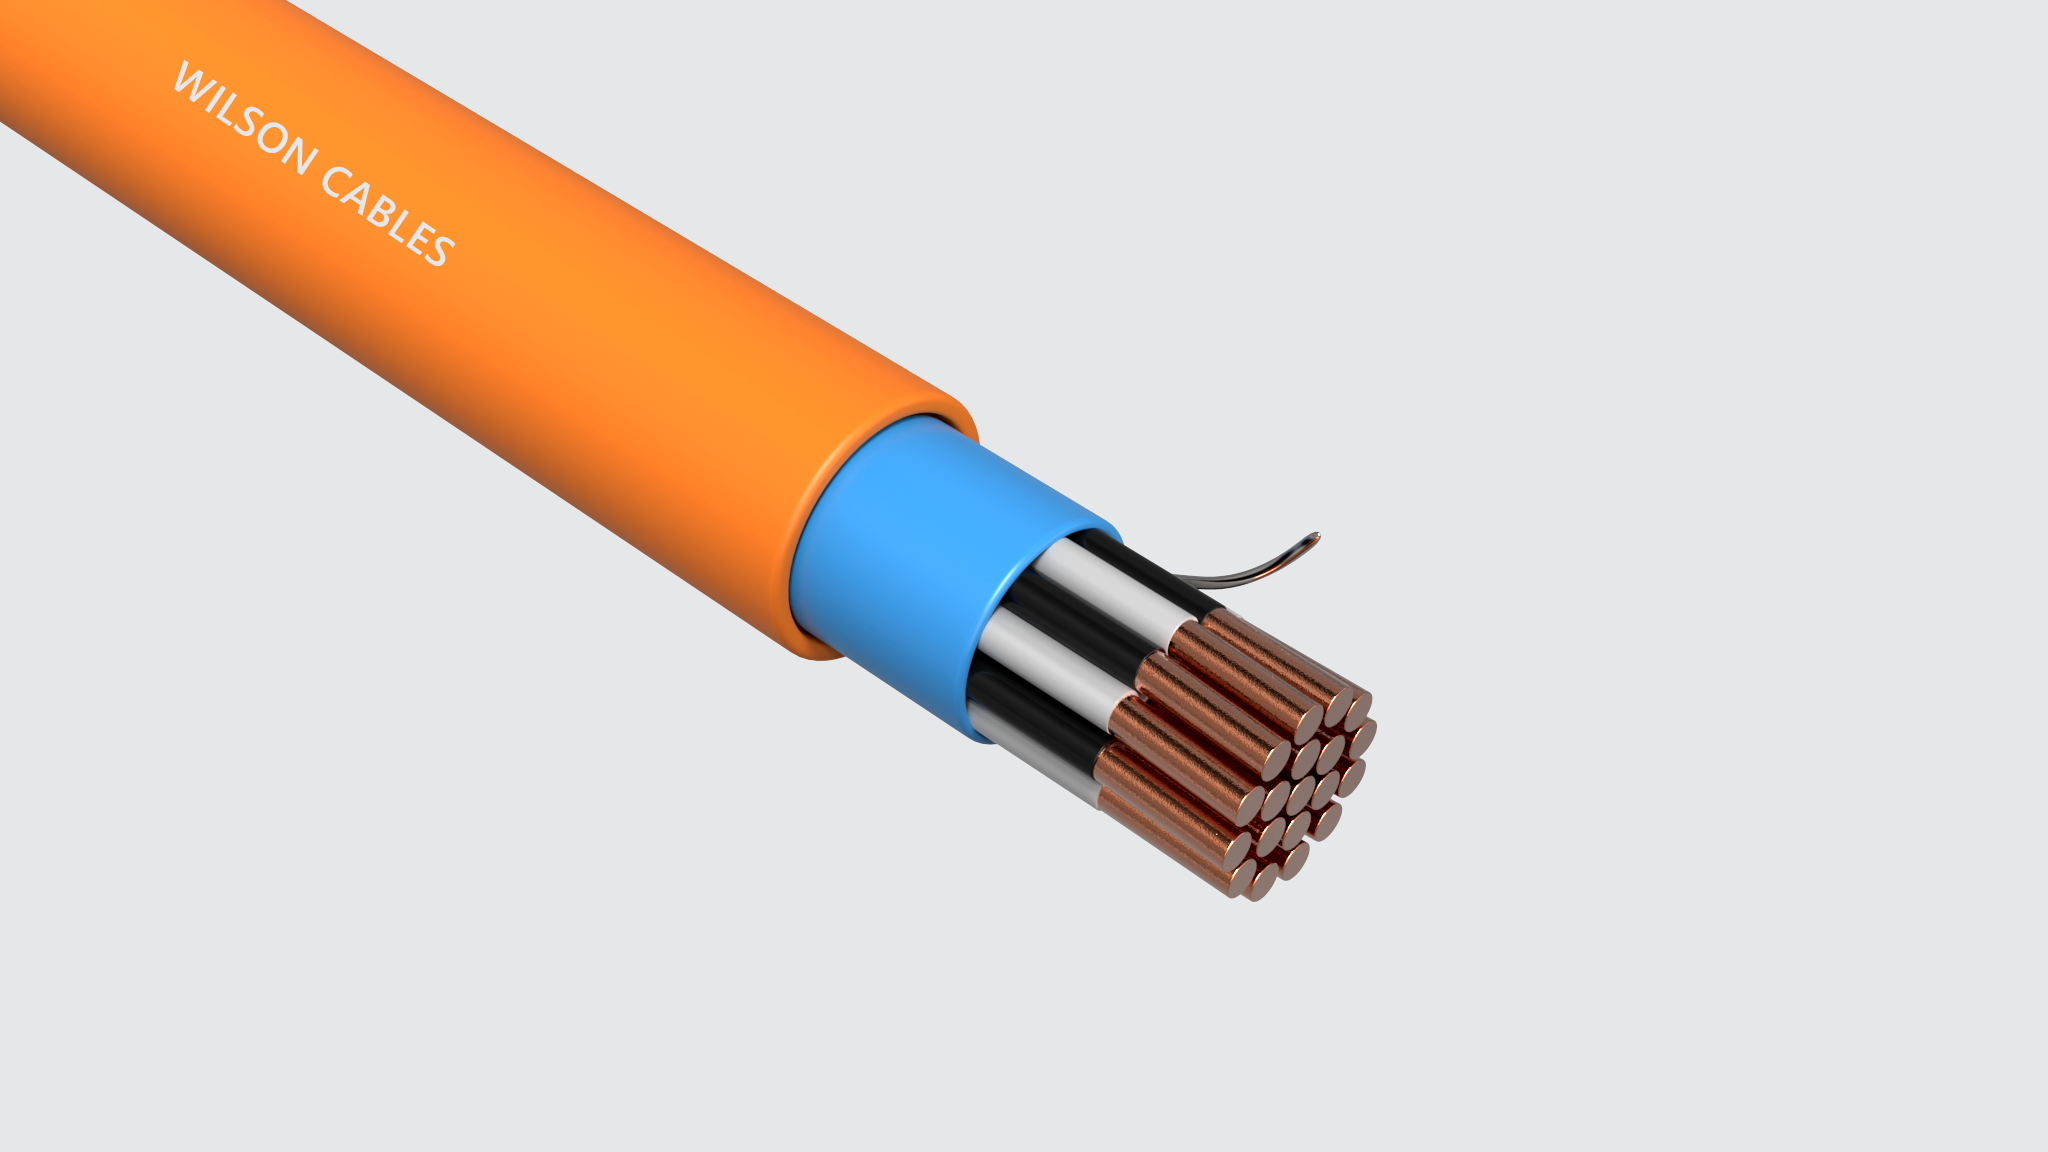 FRIC-200-M Fire Resistant Shipboard Instrumentation Cables